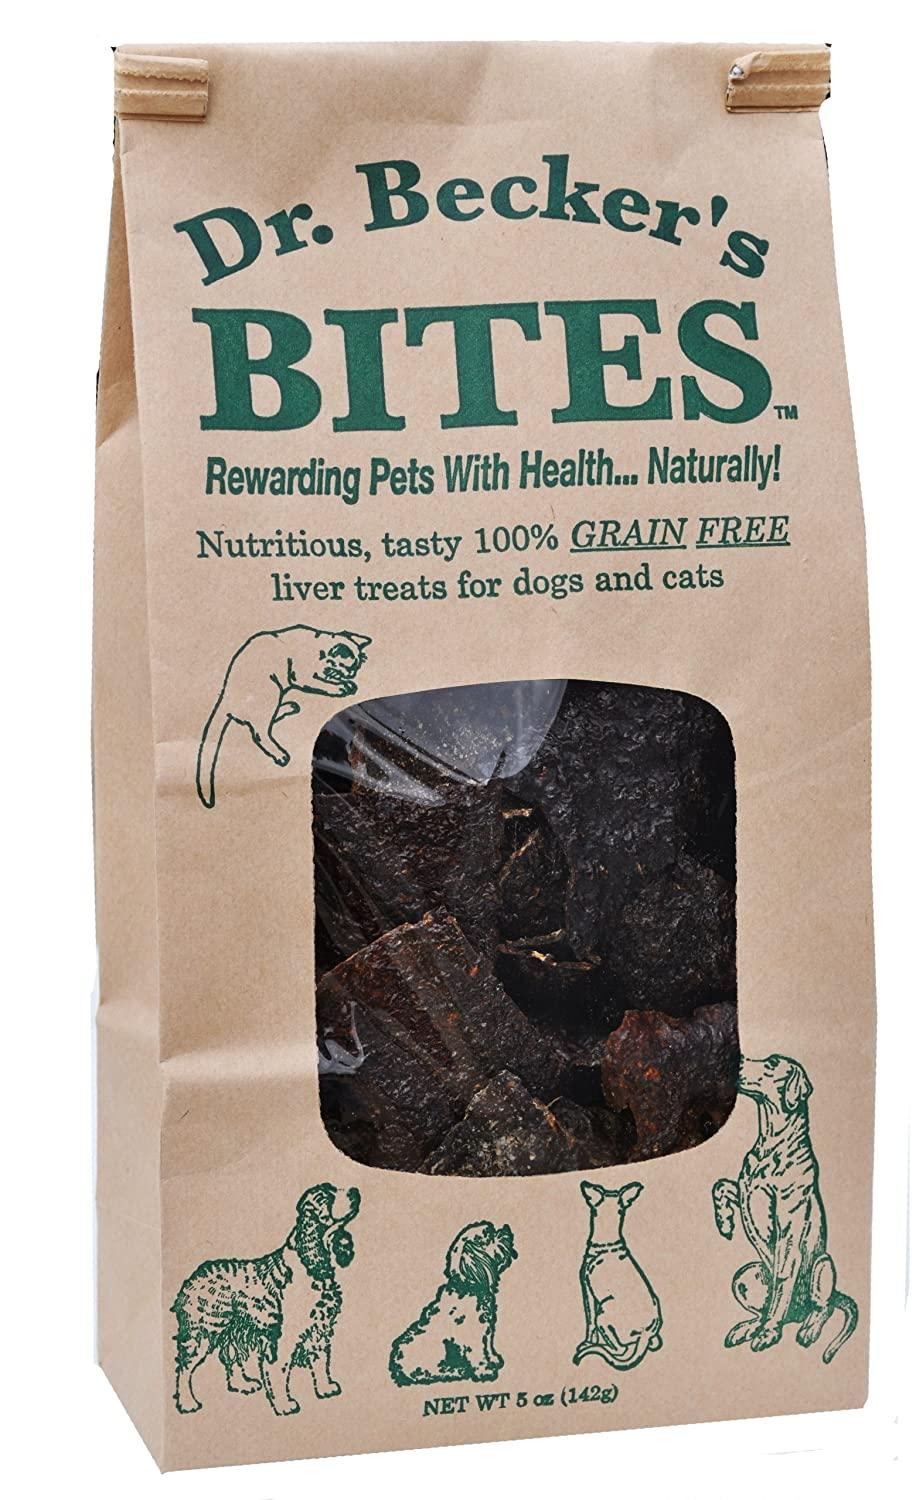 Dr. Becker's Bites Grain Free Liver Treats For Dogs & Cats, 5 oz